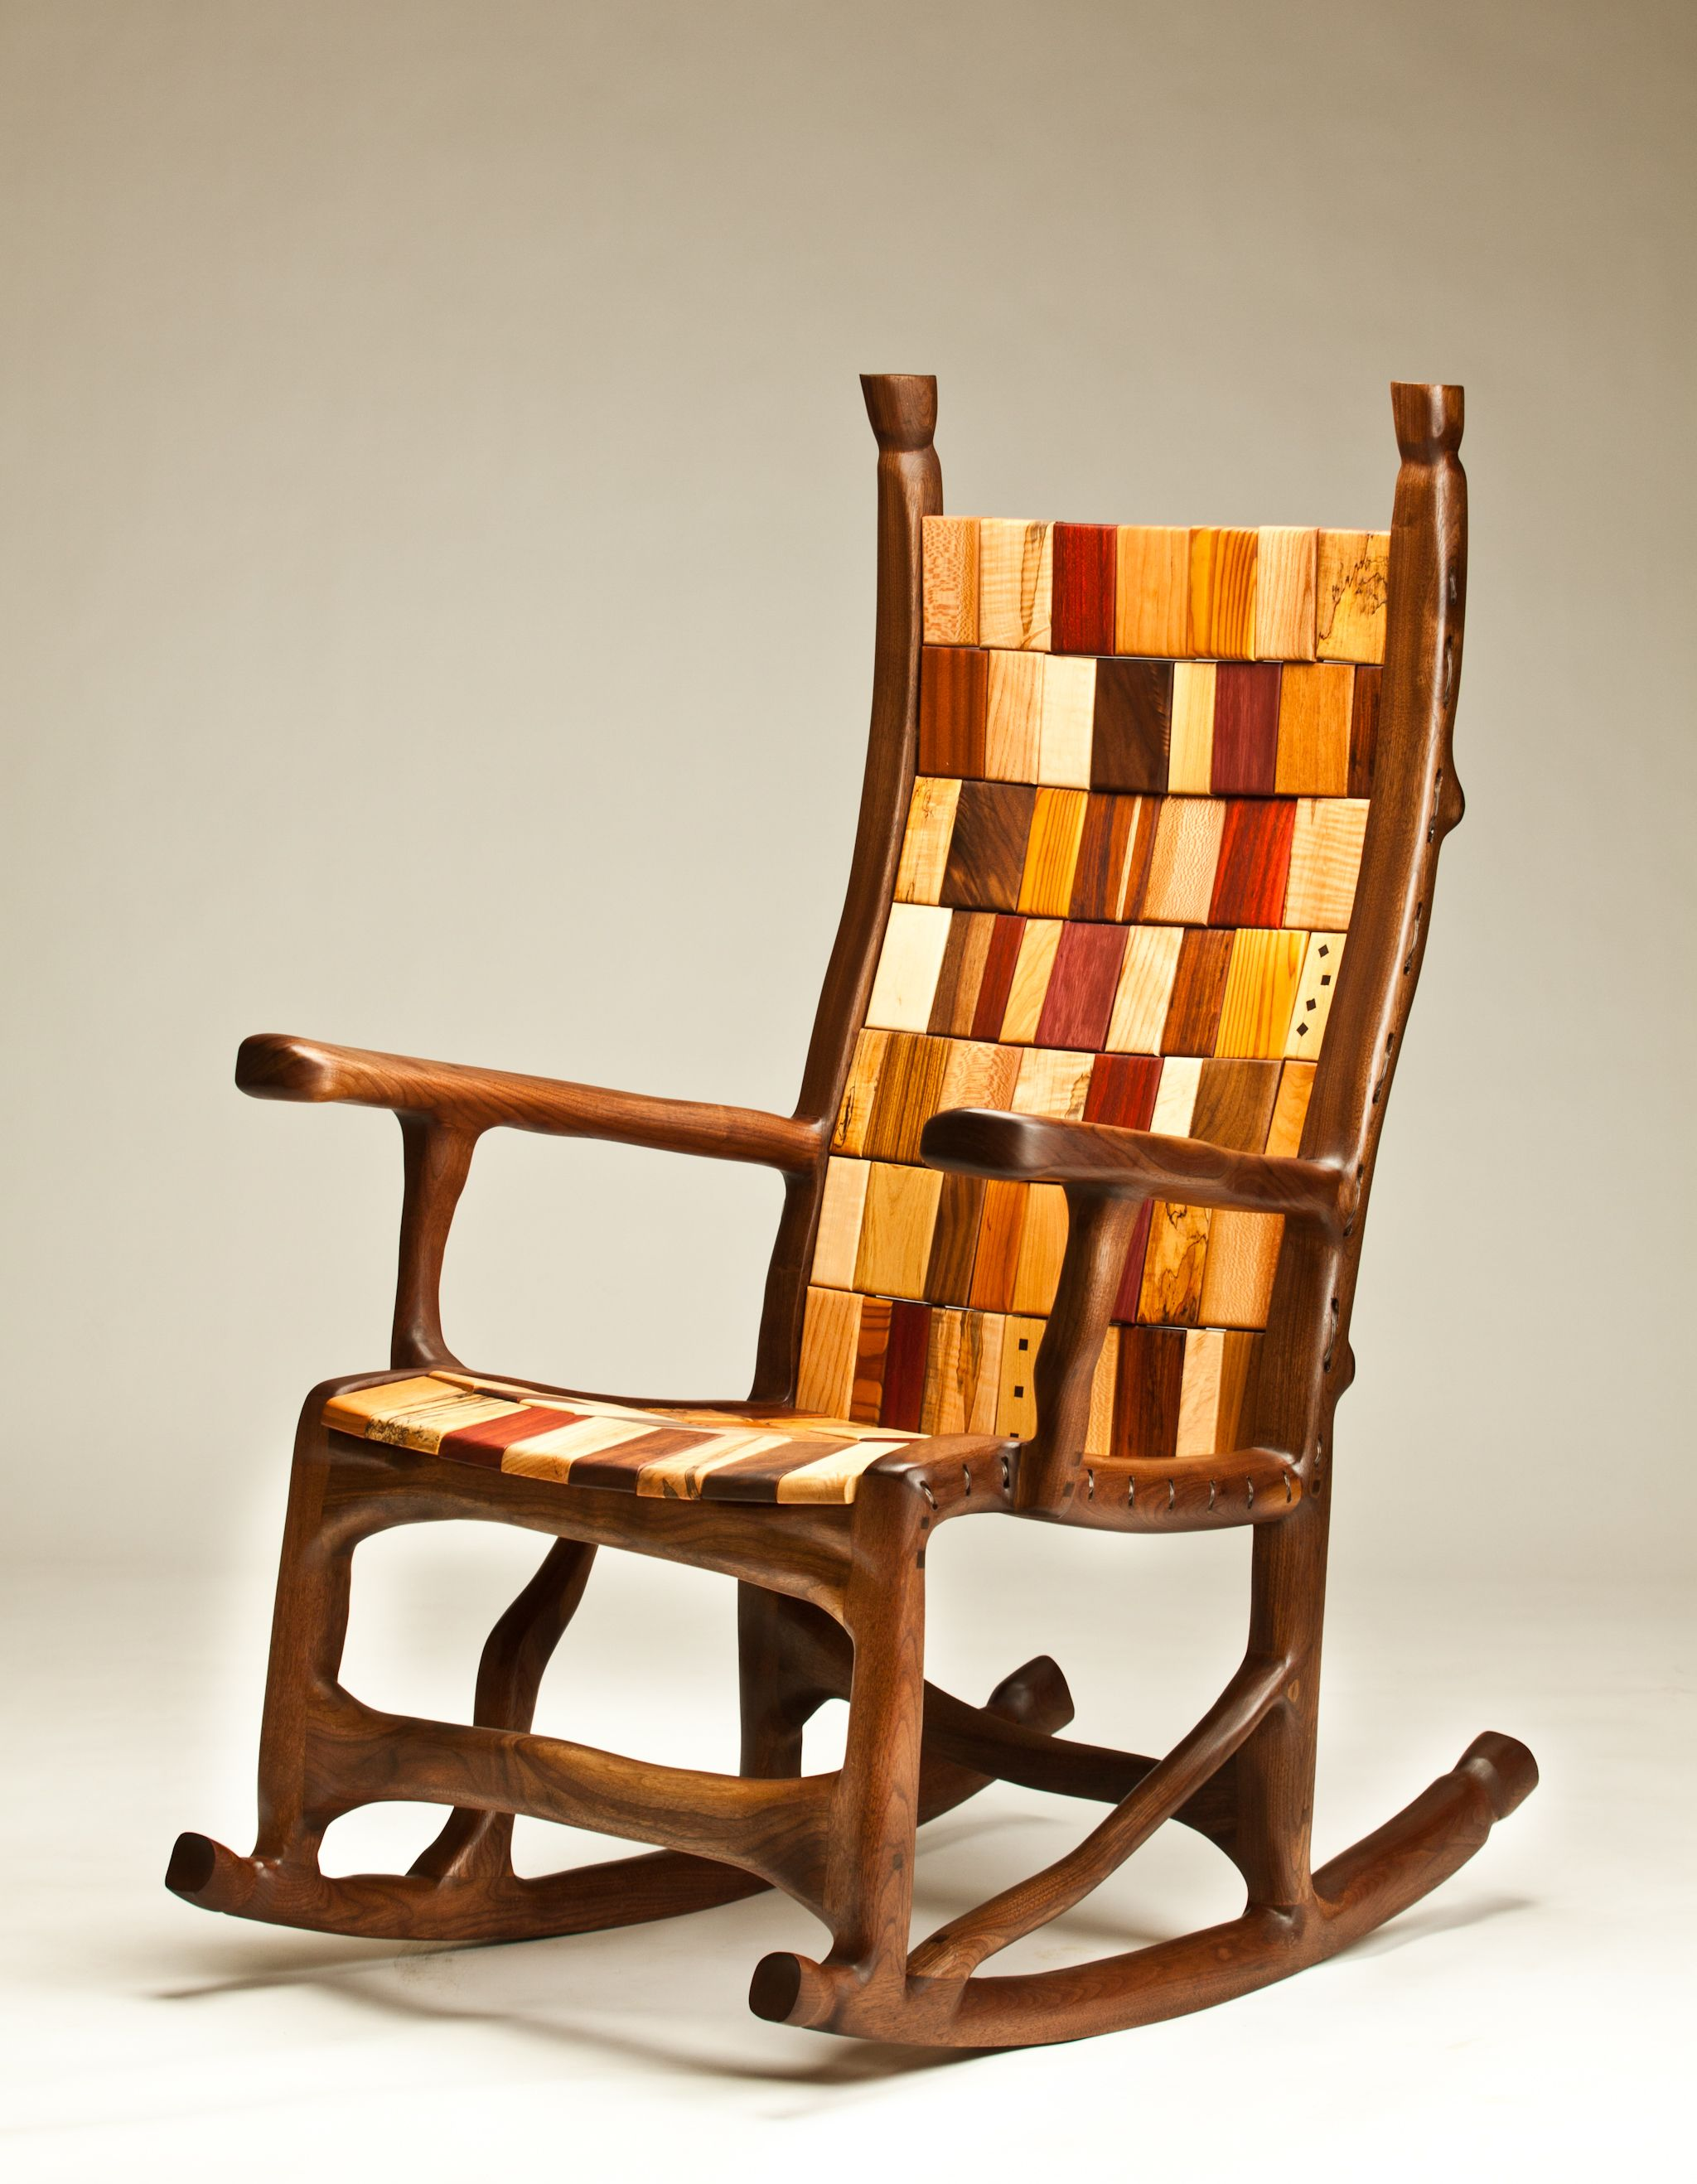 Handmade Walnut Rope And Block Rocking Chair By Darin: what are chairs made of